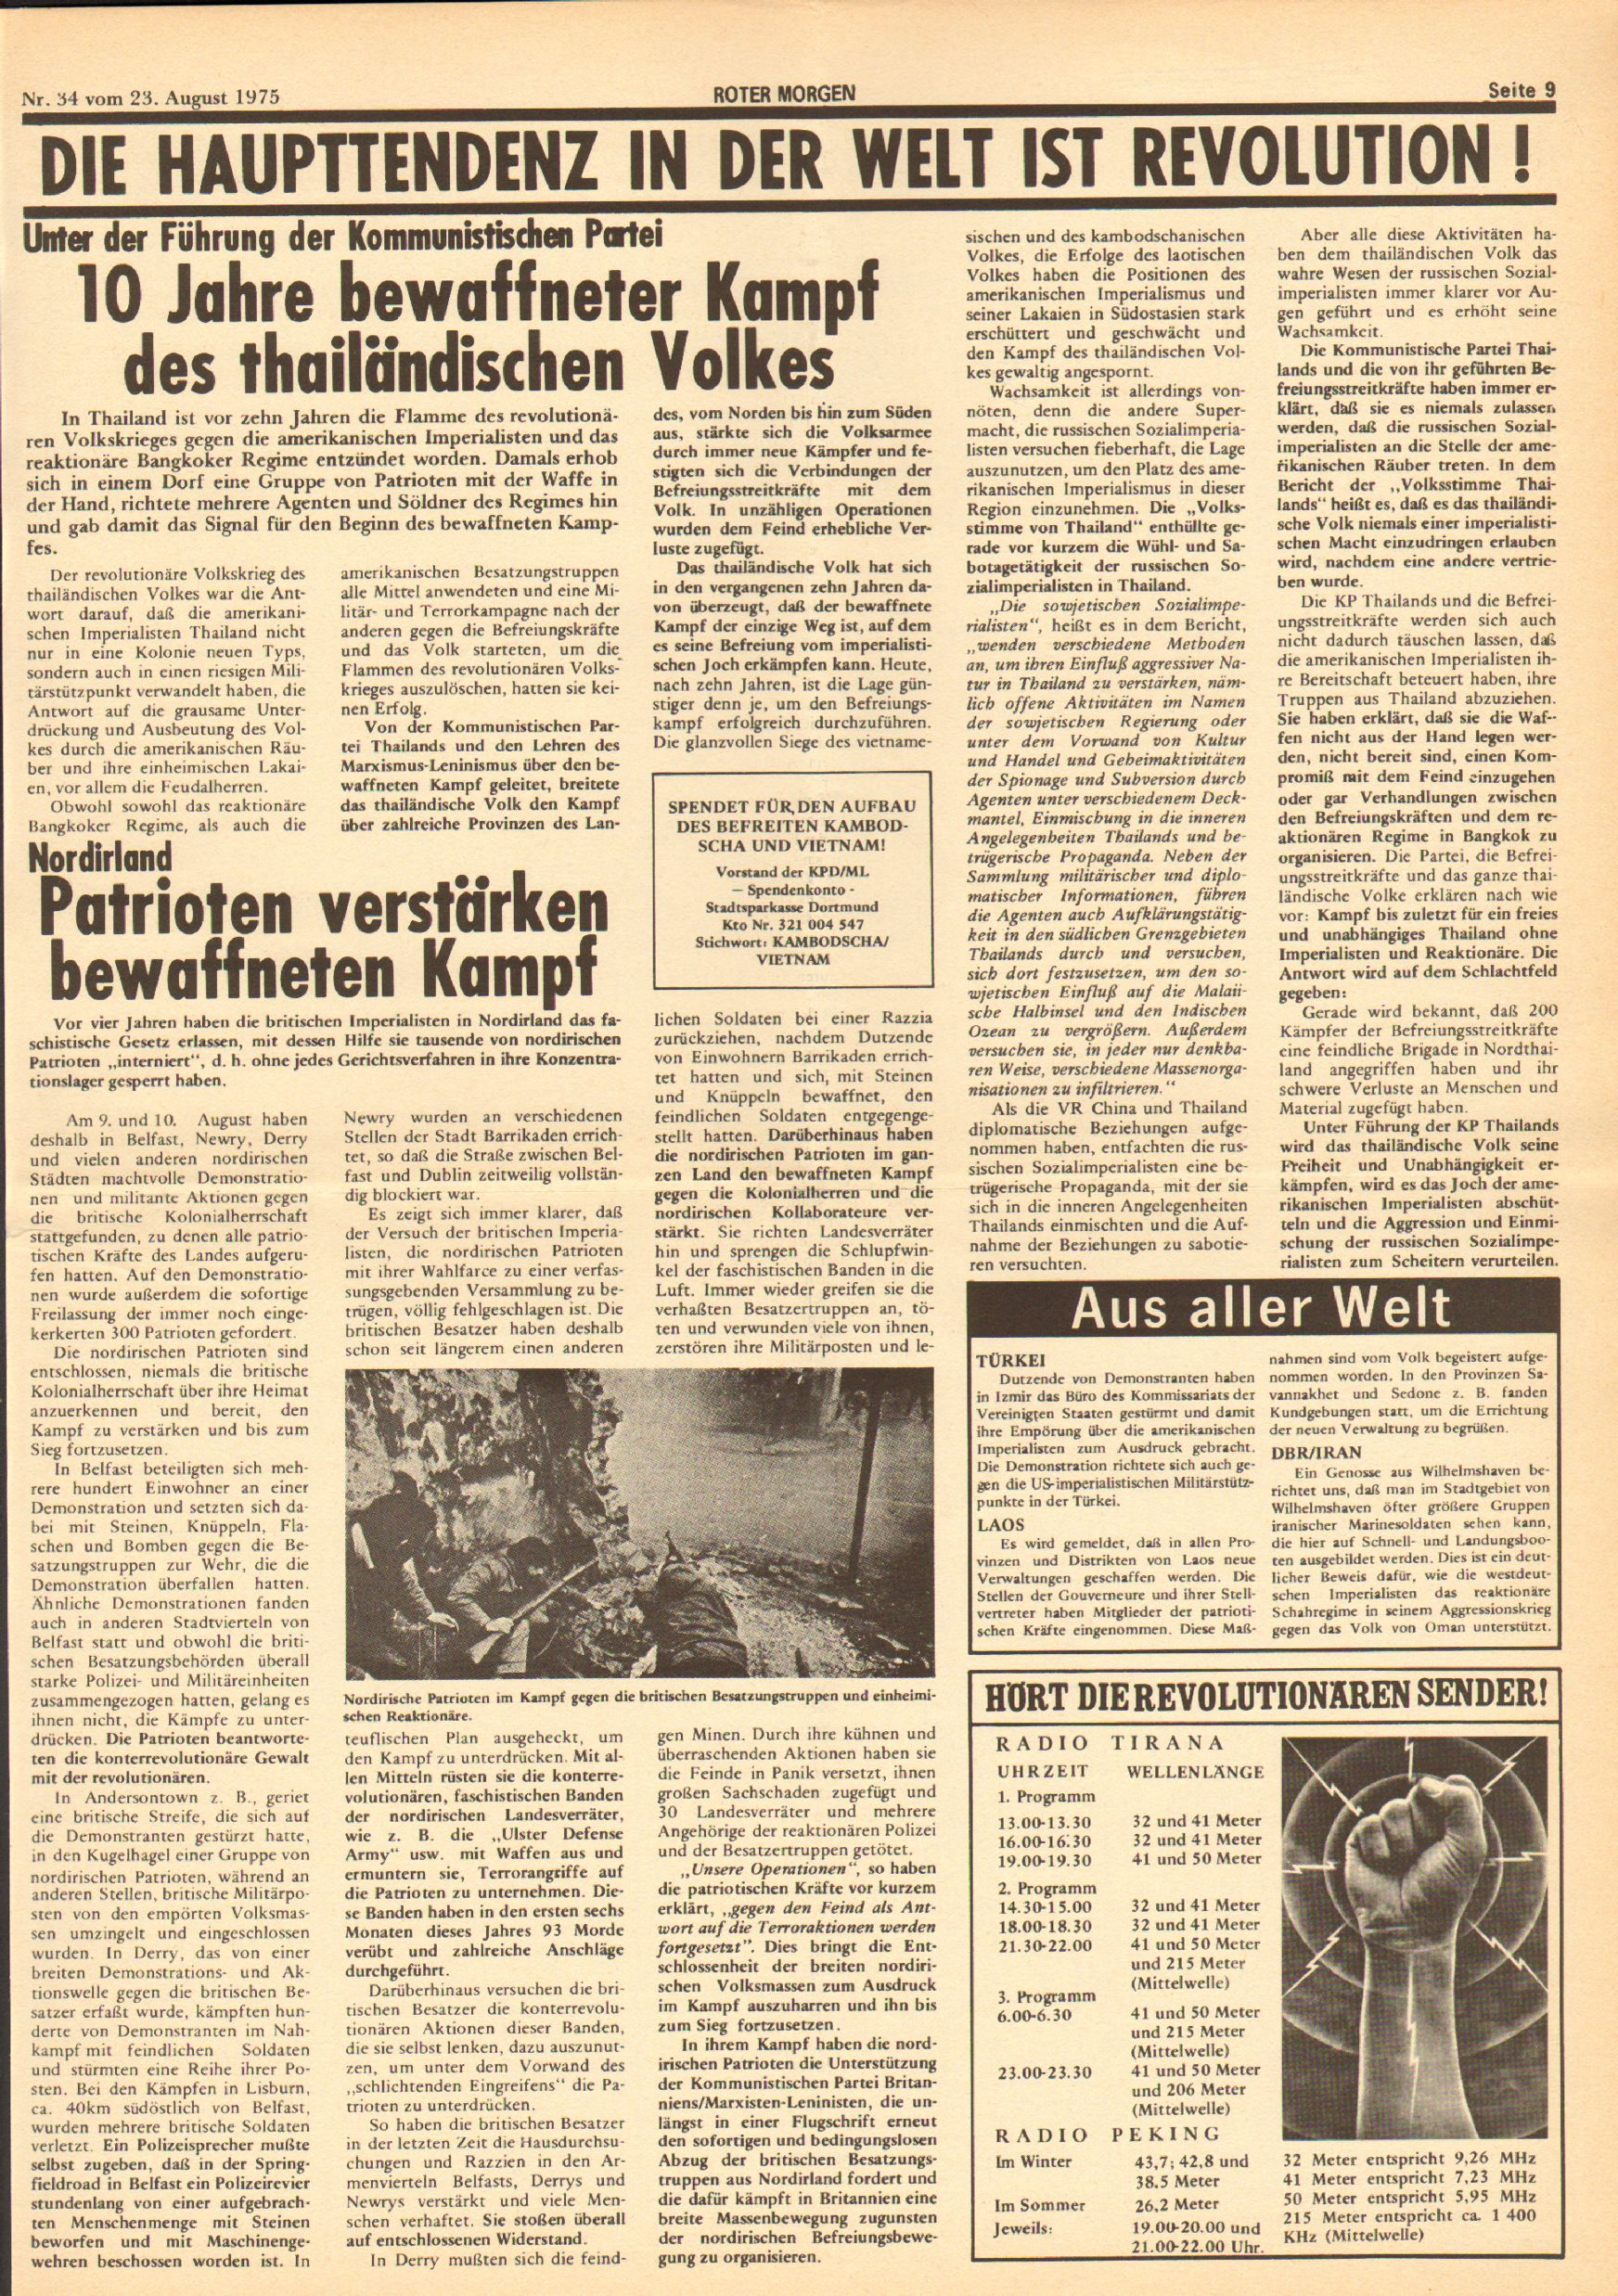 Roter Morgen, 9. Jg., 23. August 1975, Nr. 34, Seite 9